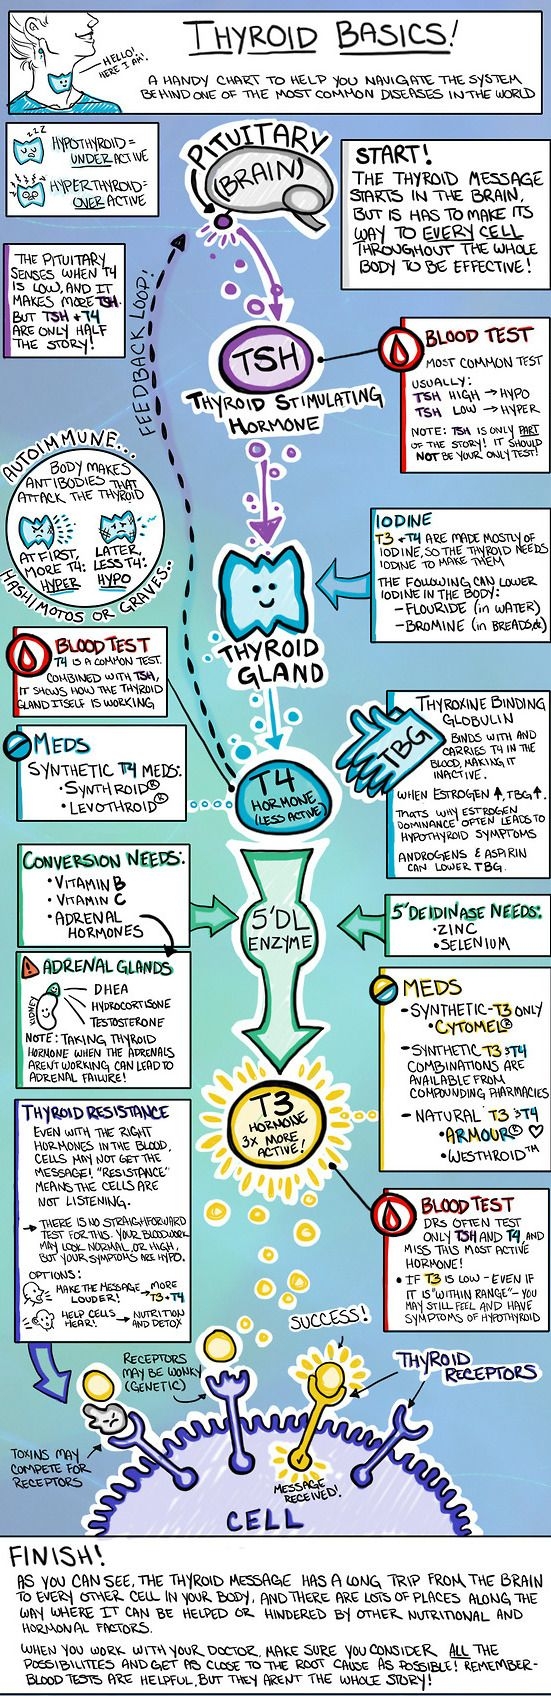 The artist DOES NOT have thyroid cancer, she has another thyroid disease, so her commentary is very much geared towards having thyroid disease and A THYROID STILL PRESENT. That said, I think this illustration is very helpful in understanding the basics of how thyroid hormone should work in a healthy human body, and can help us understand better in terms of what is going on.